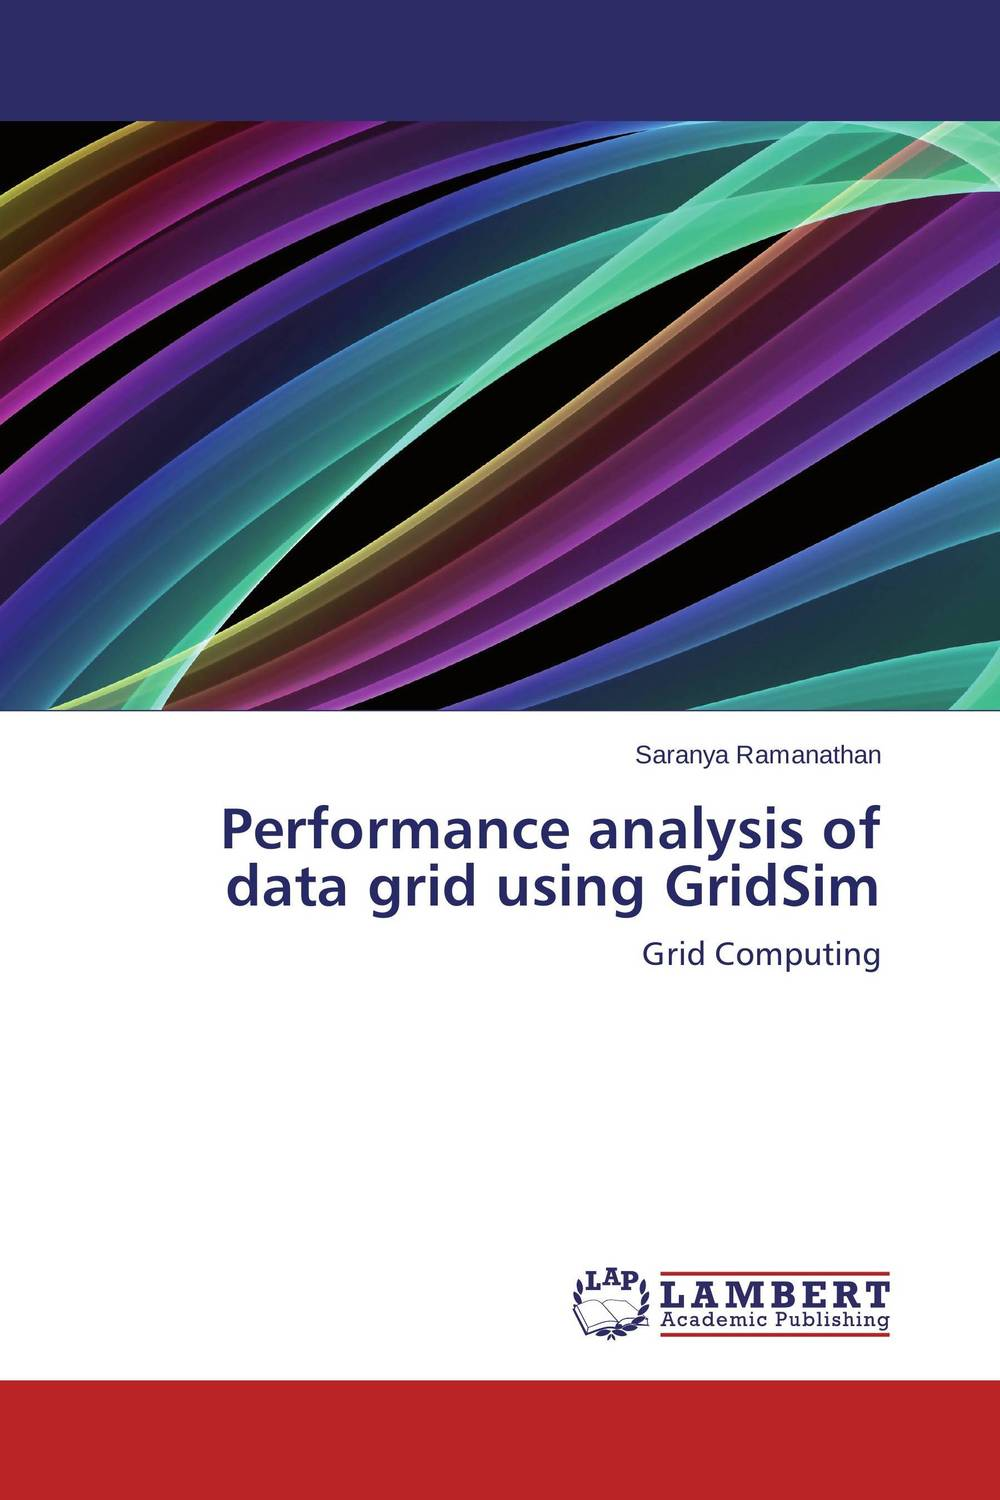 Performance analysis of data grid using GridSim david parmenter key performance indicators developing implementing and using winning kpis